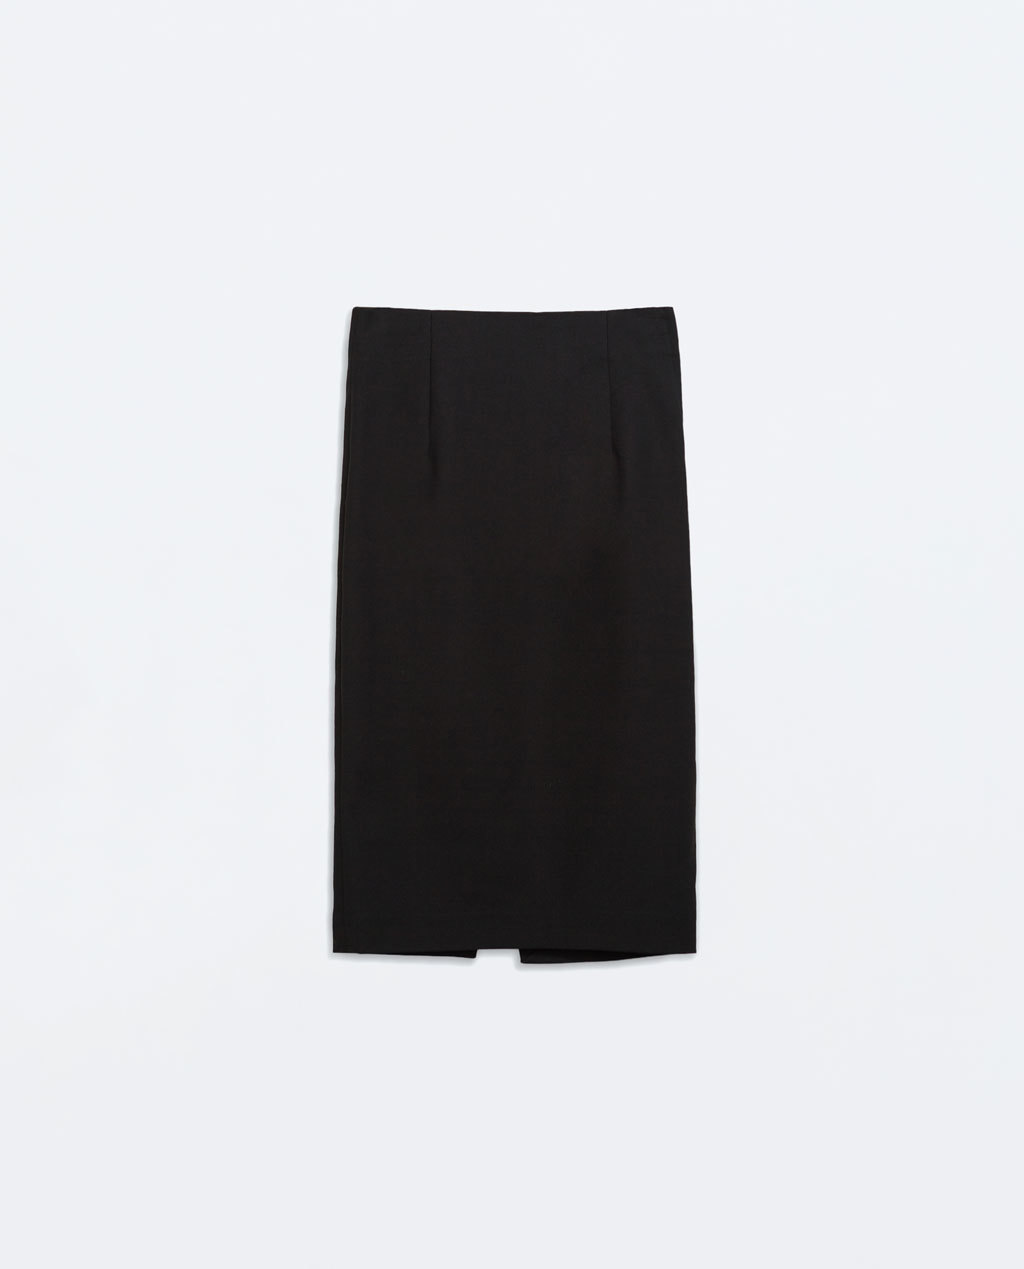 Midi Tube Skirt - pattern: plain; fit: tight; hip detail: draws attention to hips; waist: mid/regular rise; predominant colour: black; occasions: casual, creative work; length: on the knee; fibres: cotton - stretch; style: tube; texture group: jersey - clingy; pattern type: fabric; season: a/w 2014